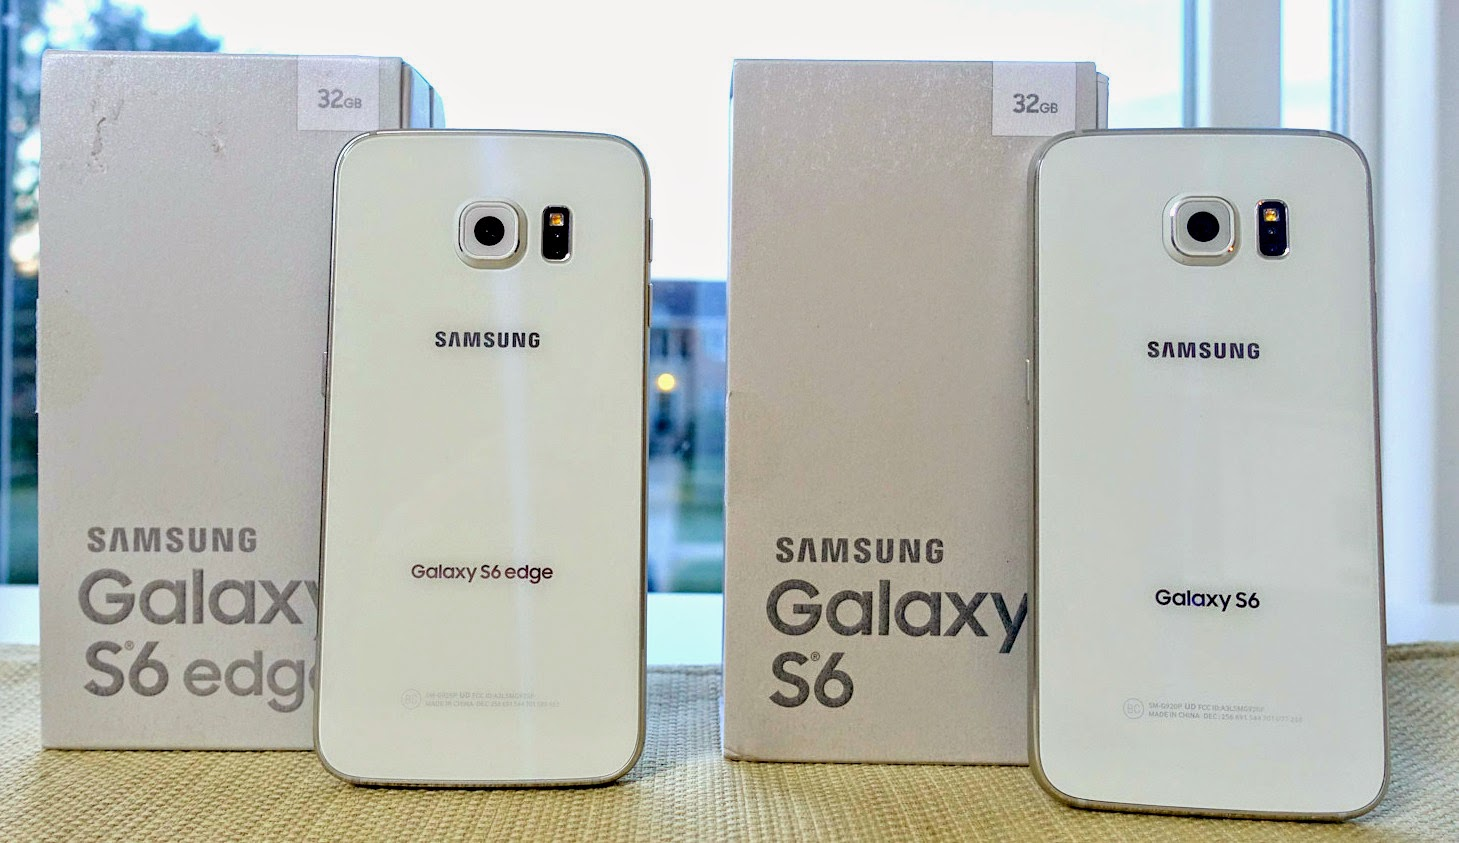 Galaxy s6 capacitive buttons the android soul - Samsung Went With Almost The Same Design In The Screen Part With 2 Capacitive Keys With A